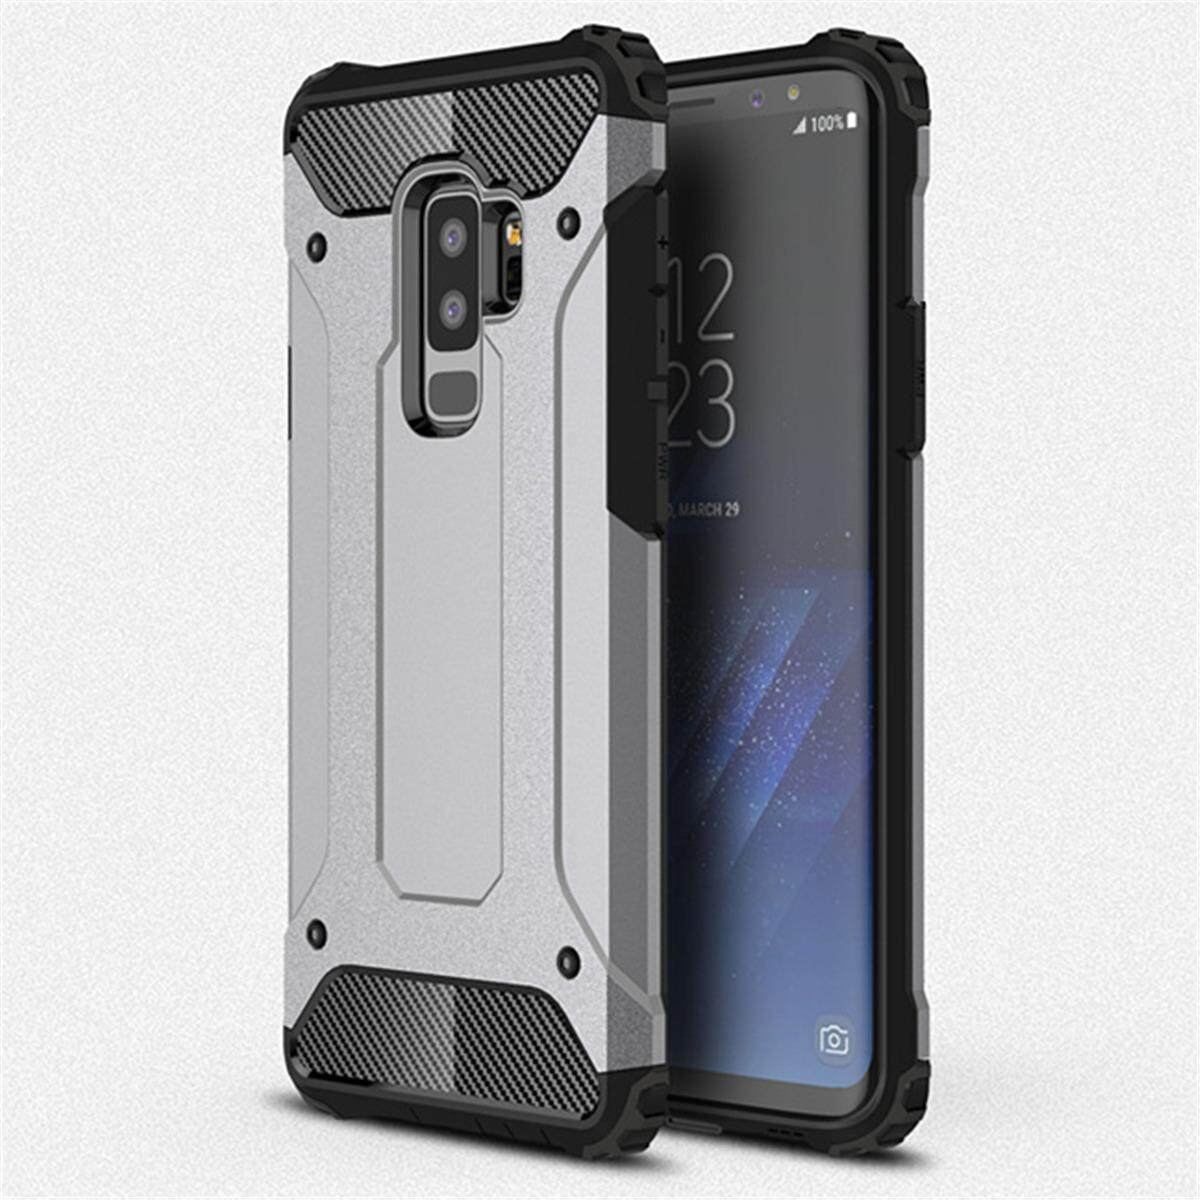 for Samsung Galaxy S9 Plus & S9+ Case [Steel Armor] Carbon Fibre Premium Soft TPU + Hard PC Back Cover Cell Phone Hybrid Protection Armor Case with Dust Cap